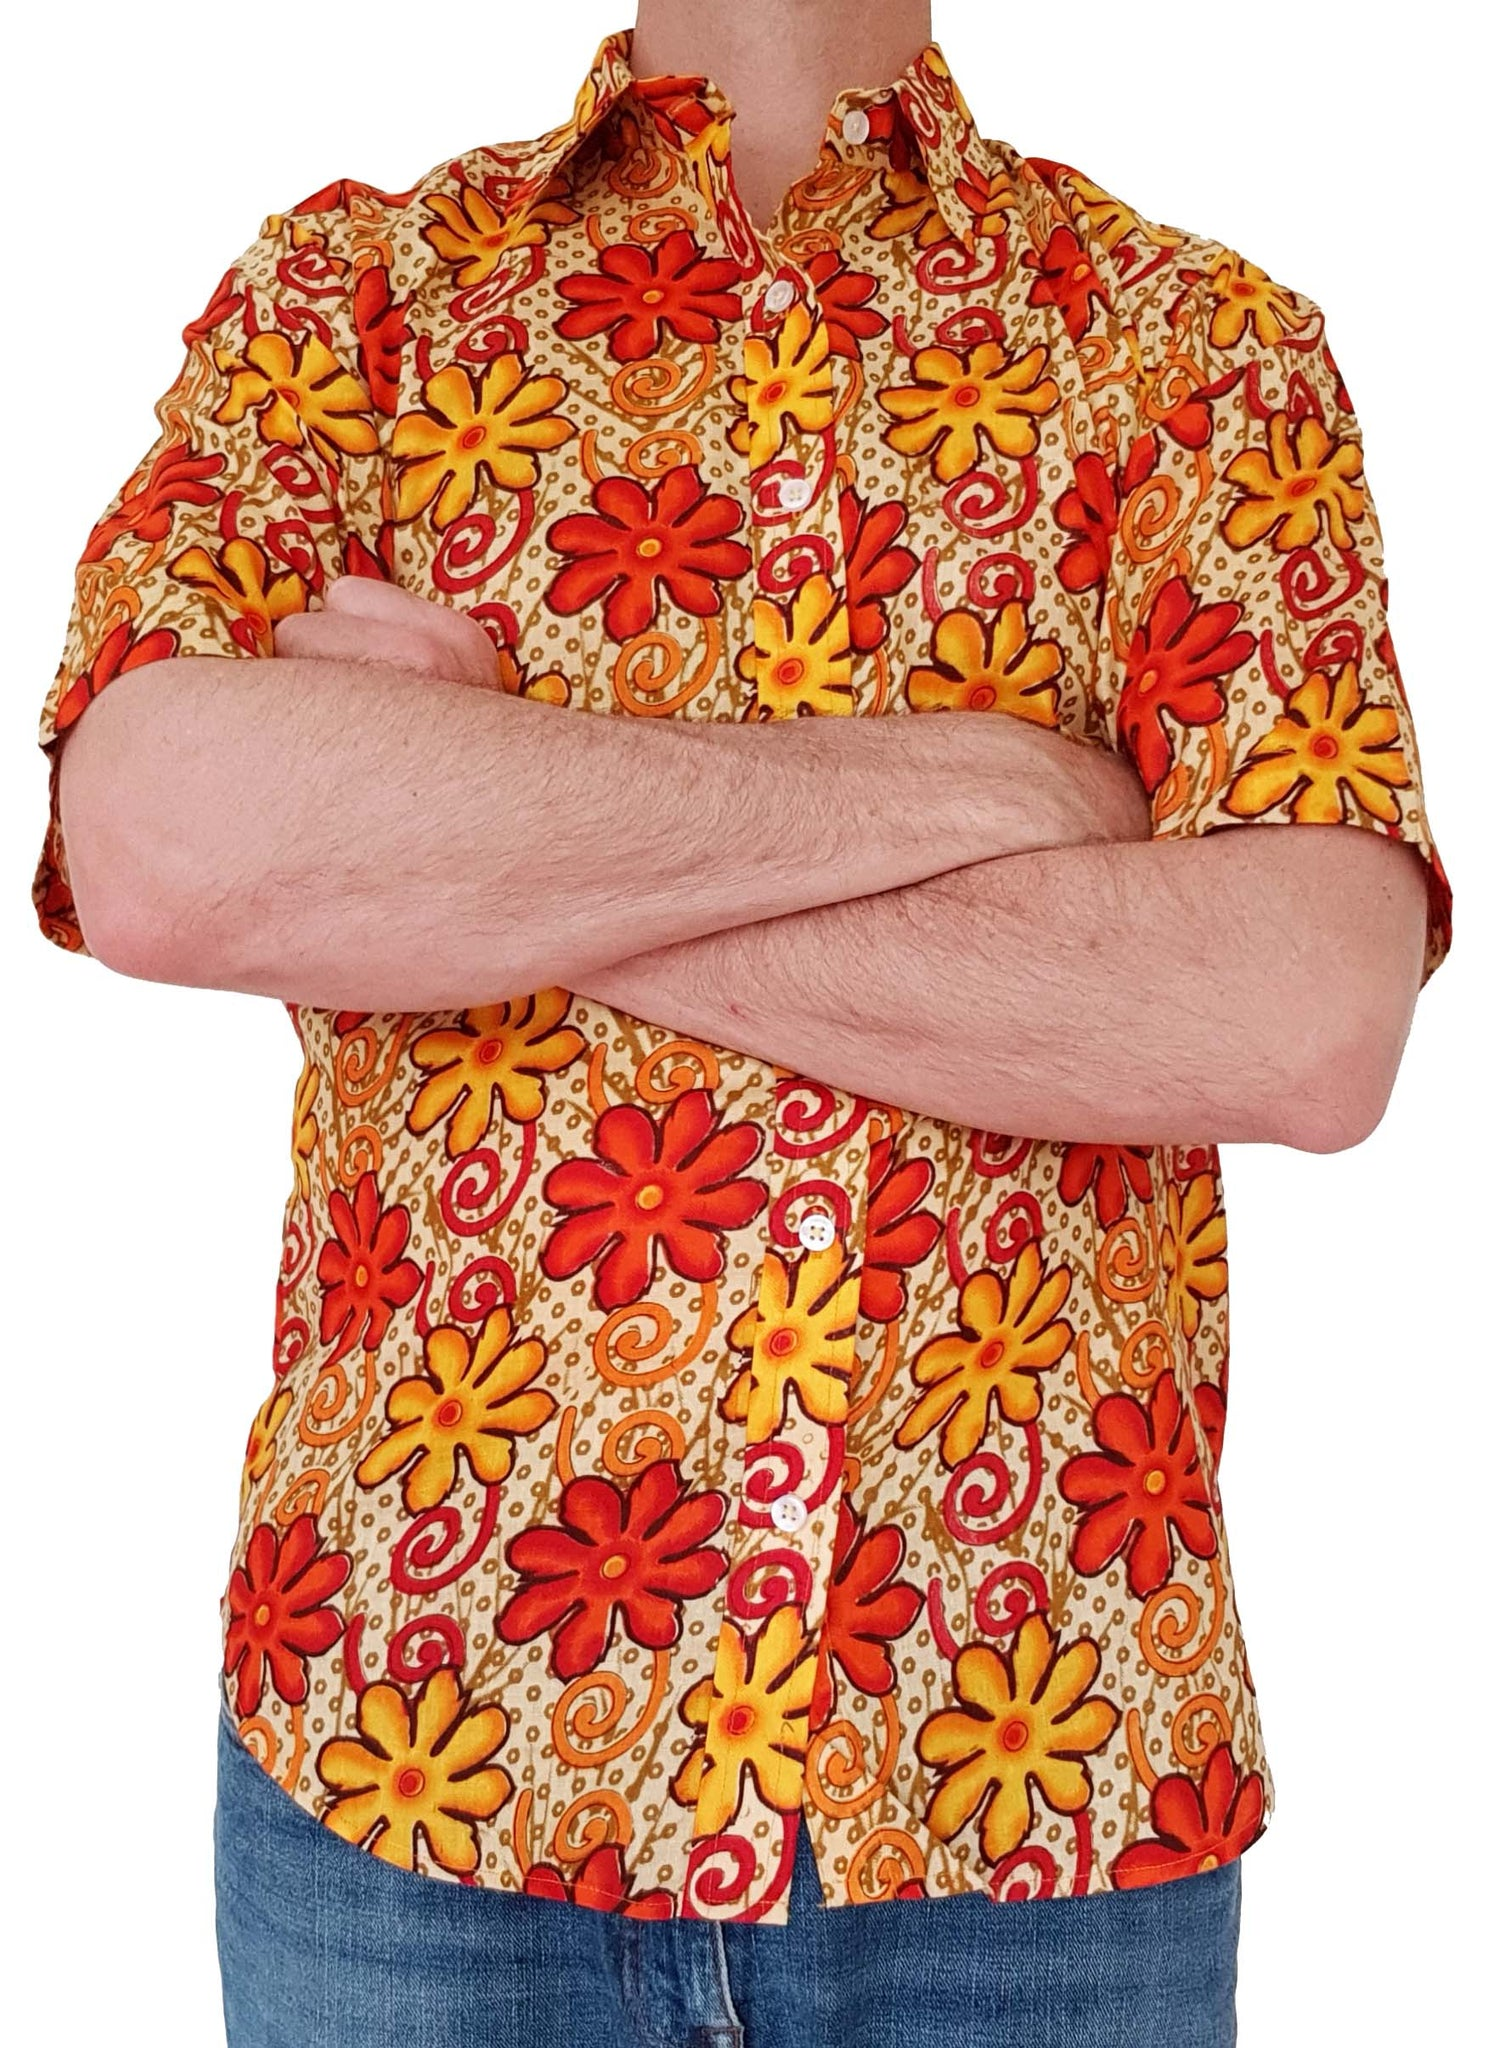 Bent Banani Short Sleeve Floral Shirt - SHEPHERD. Orange And Yellow Flowers On Orange Spotted Background